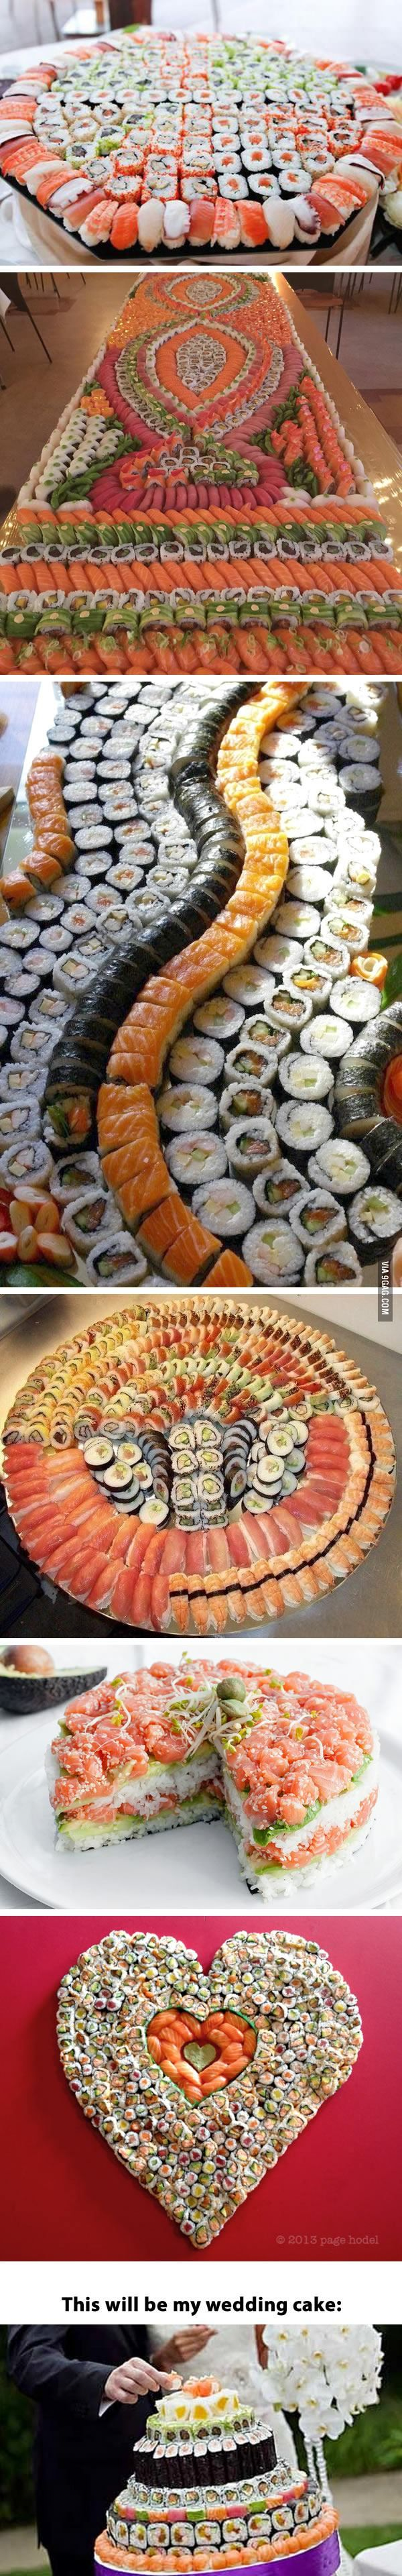 Sushi porn, for the crazy sushi lovers (like me)